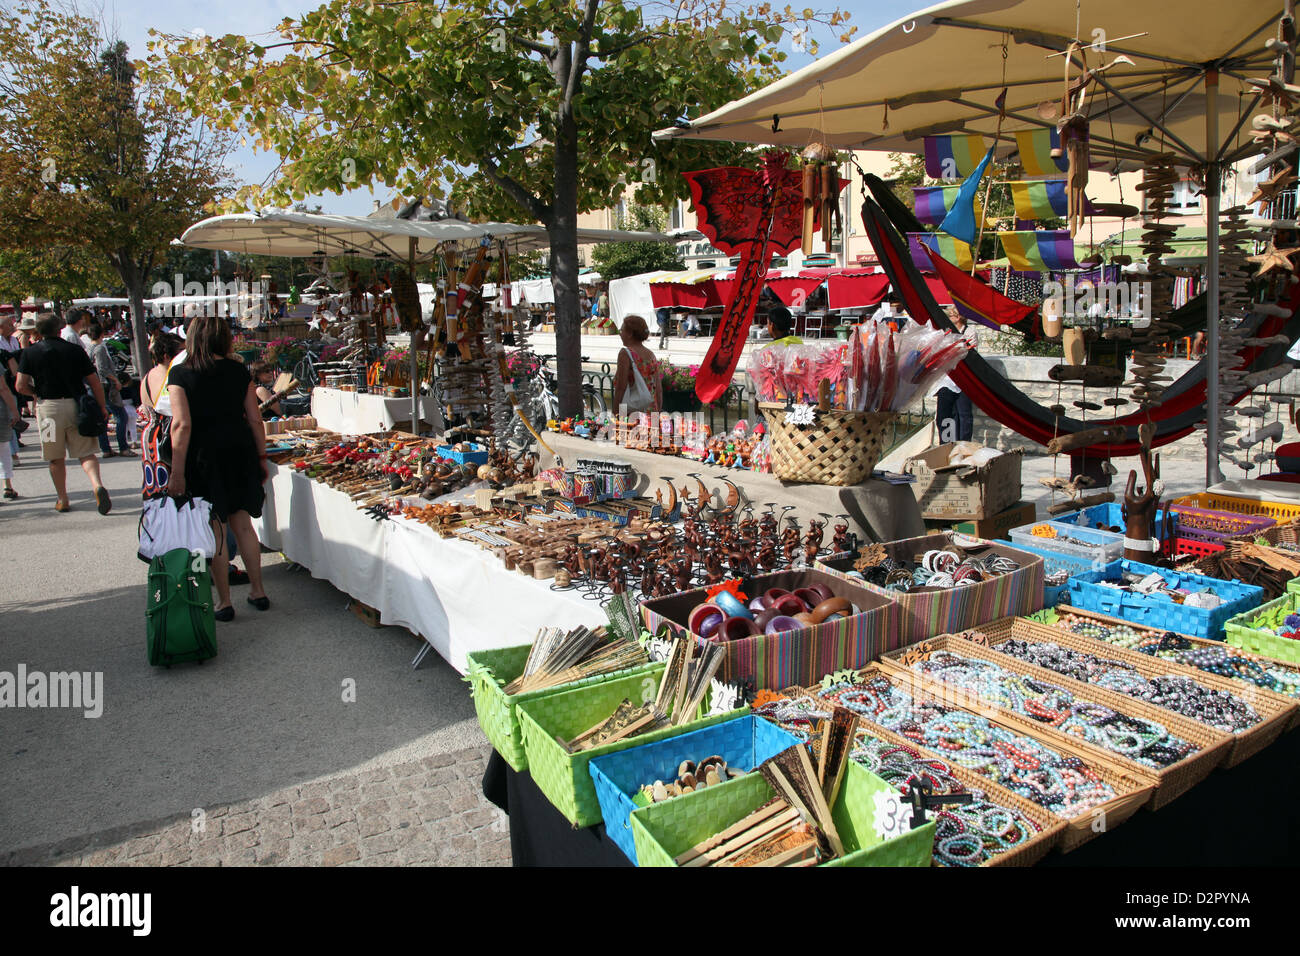 Stalls in the street market held every Sunday in Ile sur la Sorgue, Provence, France, Europe - Stock Image